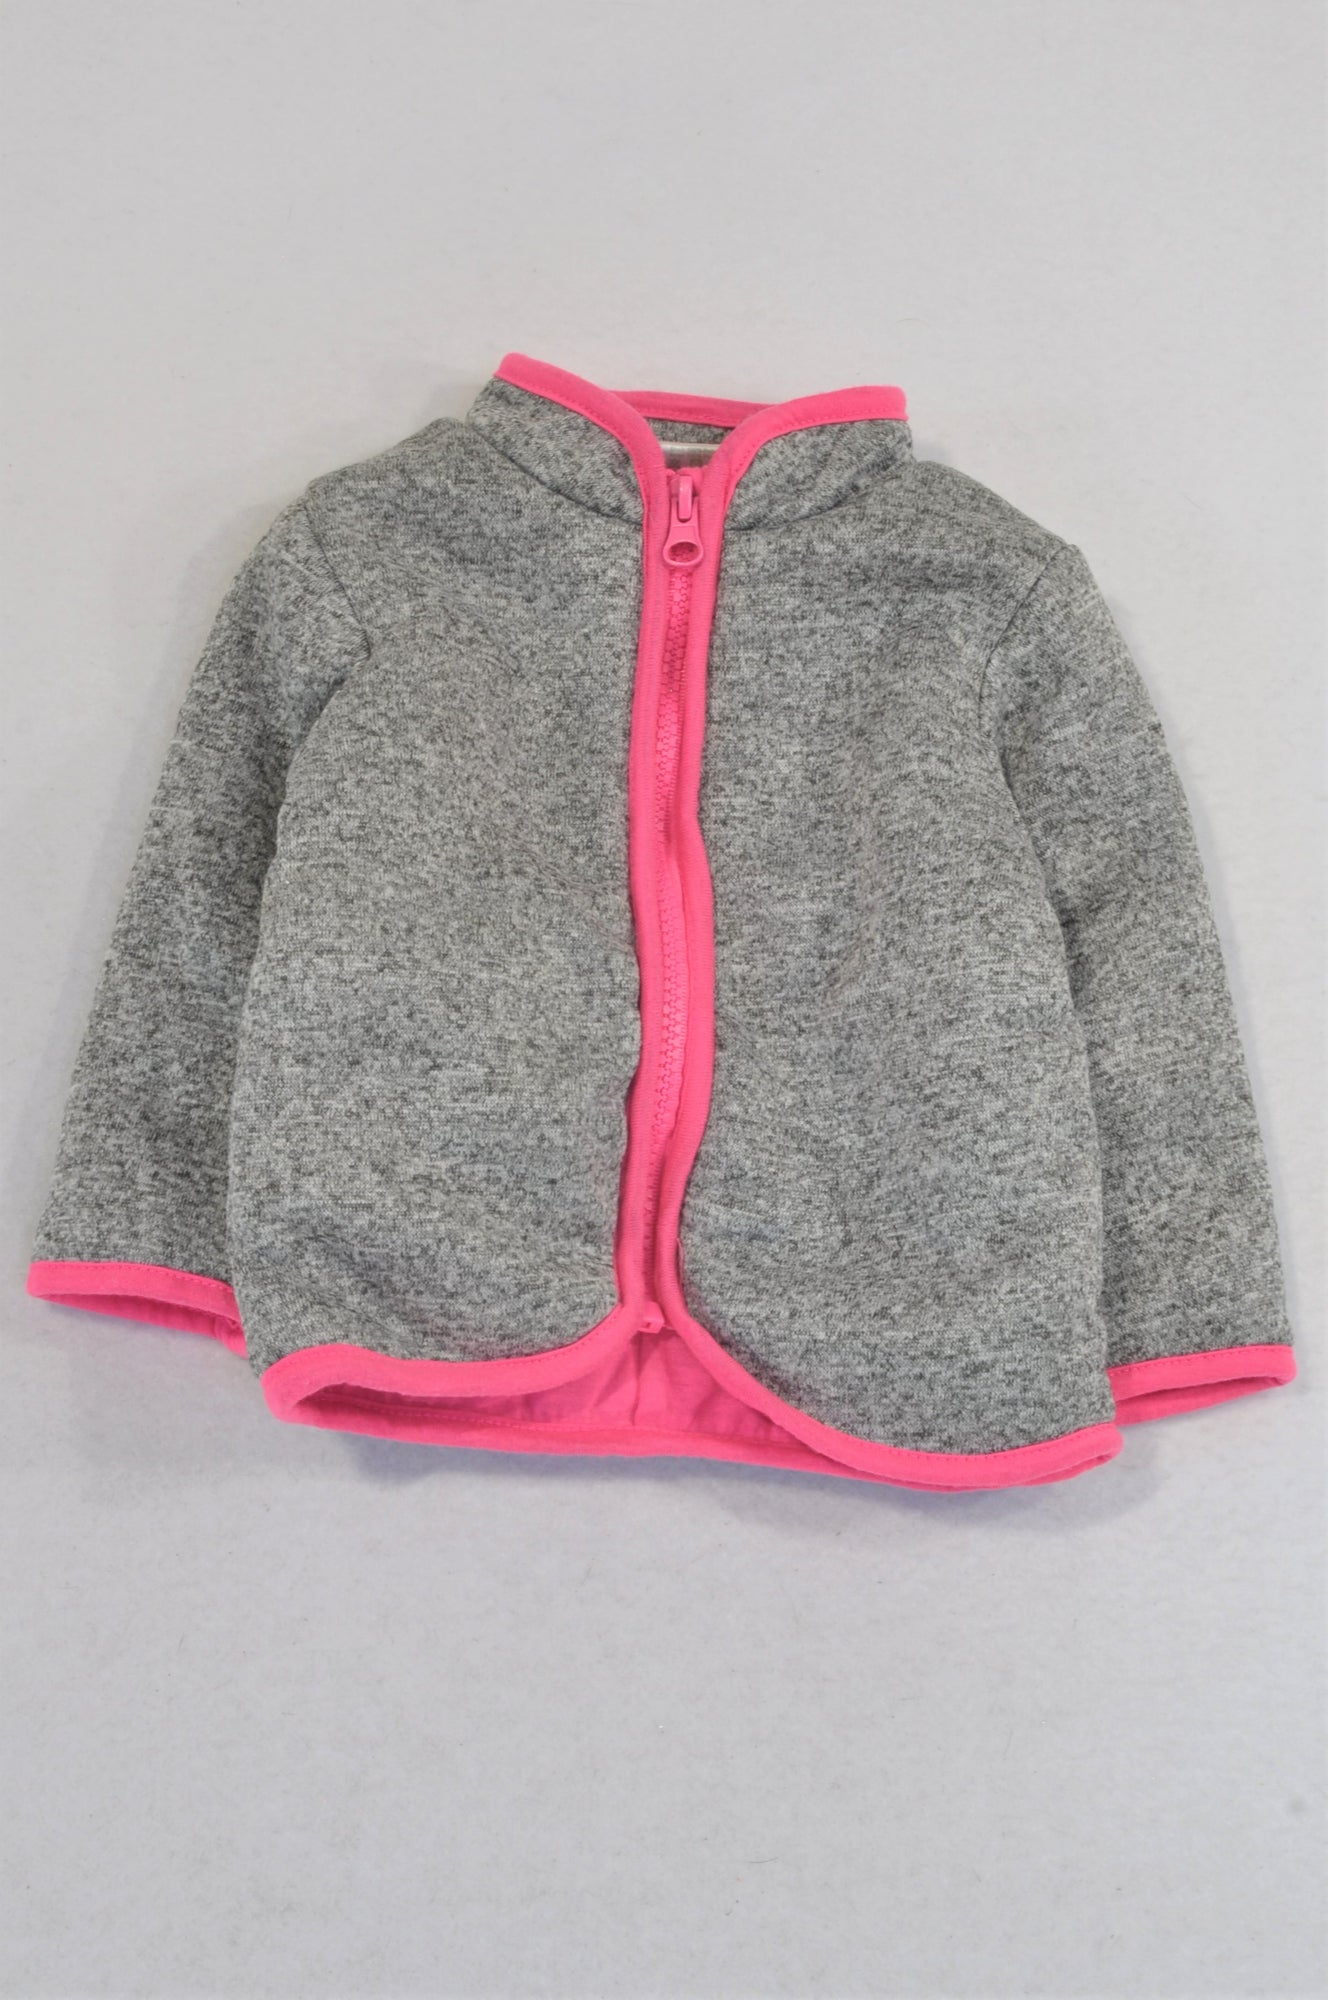 Pep Grey Pink Trim Zipper Padded Jacket Girls 3-6 months